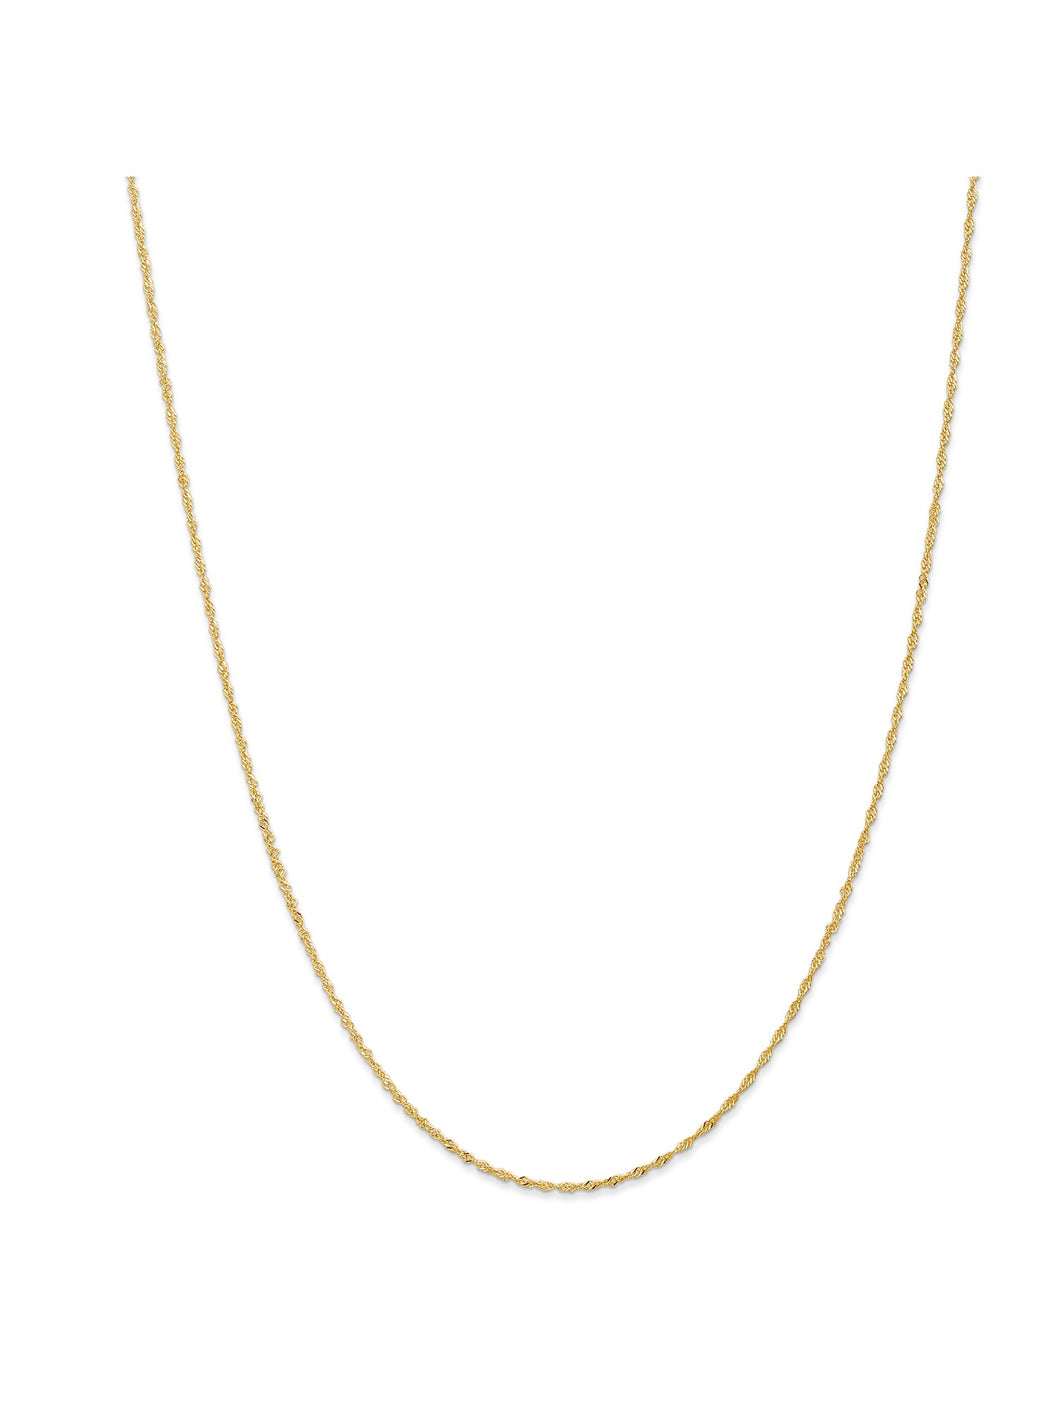 14k Yellow Gold 1.1mm Wide Singapore Chain Necklace